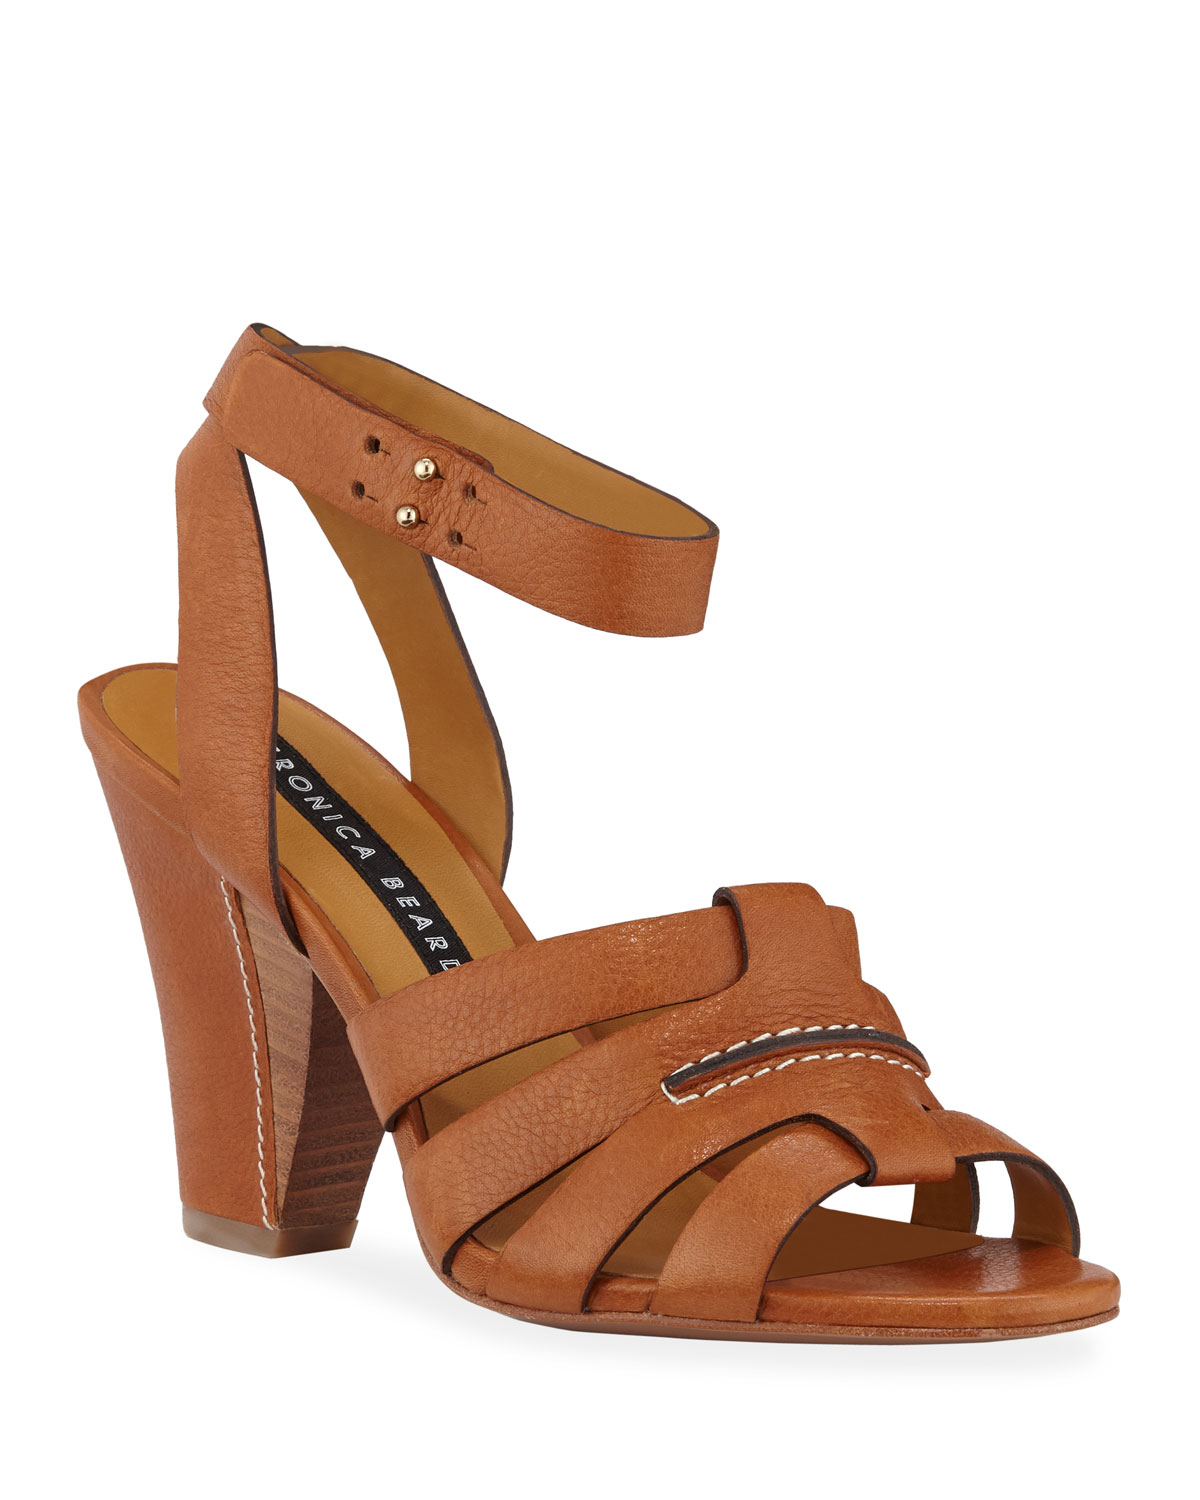 Charley Leather Ankle-Wrap Sandals